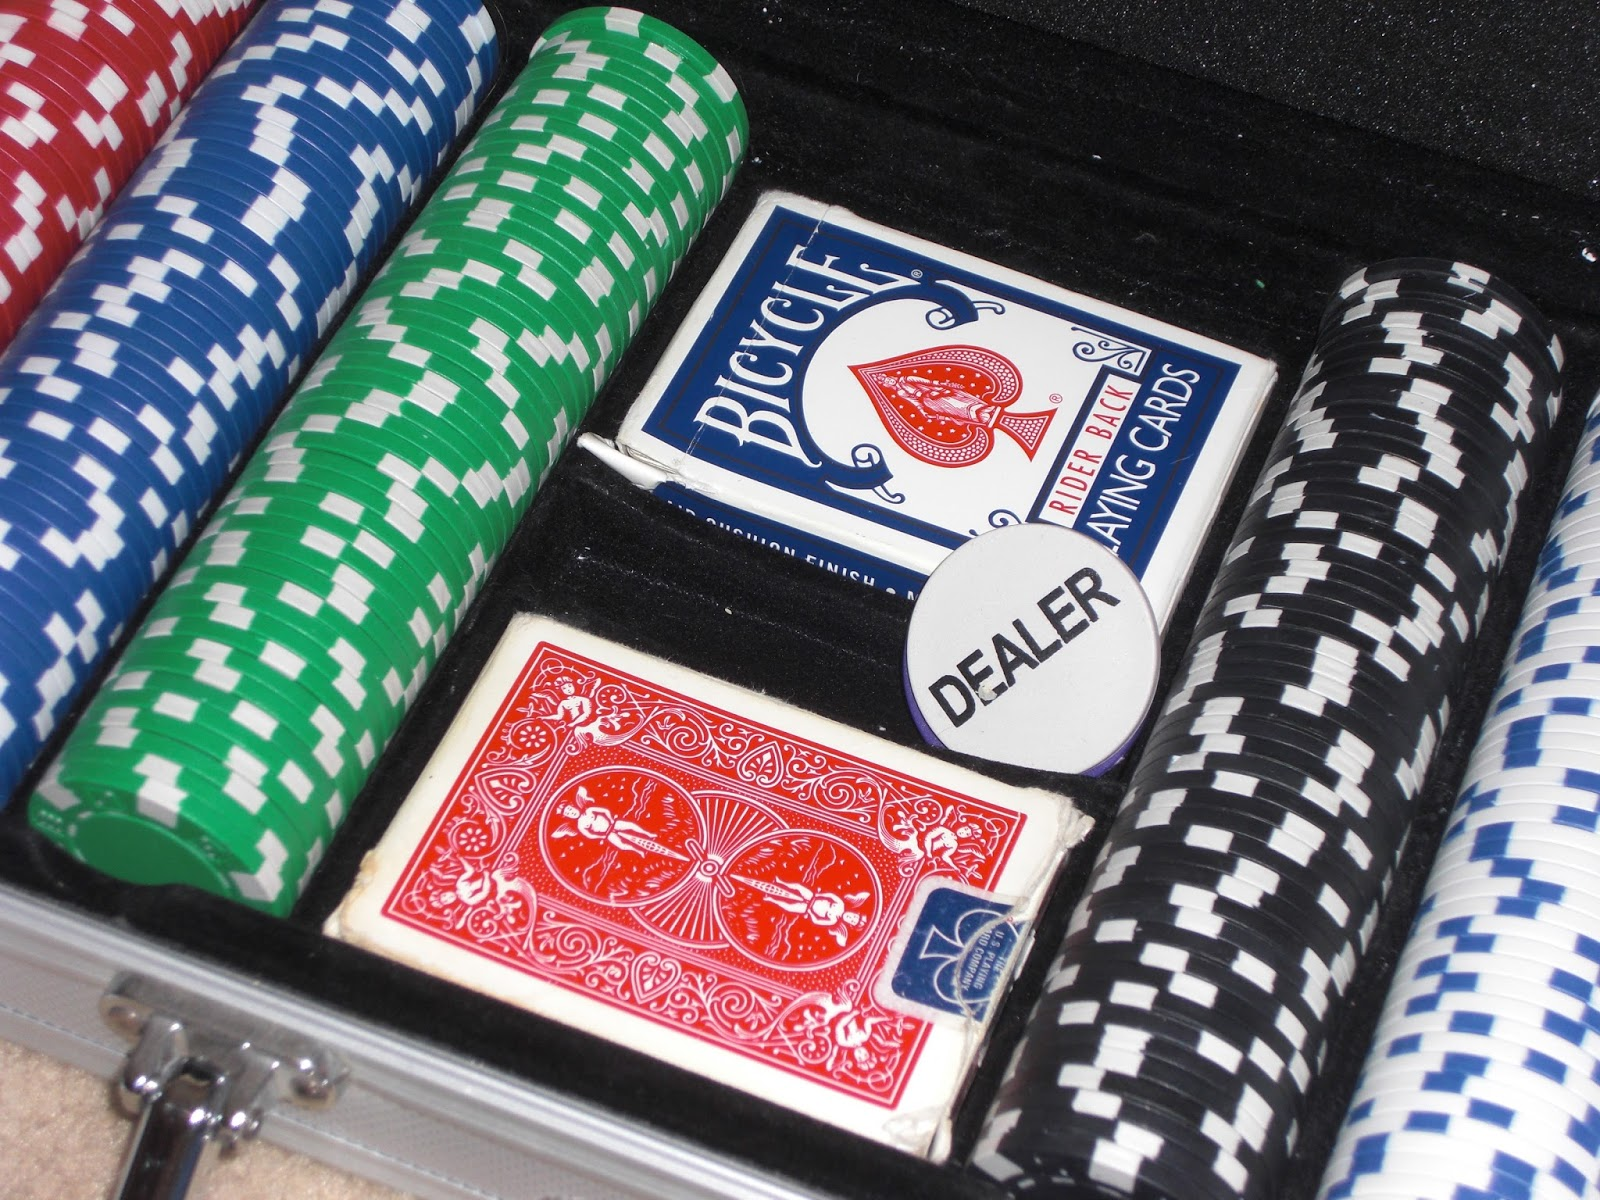 4 Pics 1 Word Deck Of Cards Poker Chips Texas Holdem Dead Hand